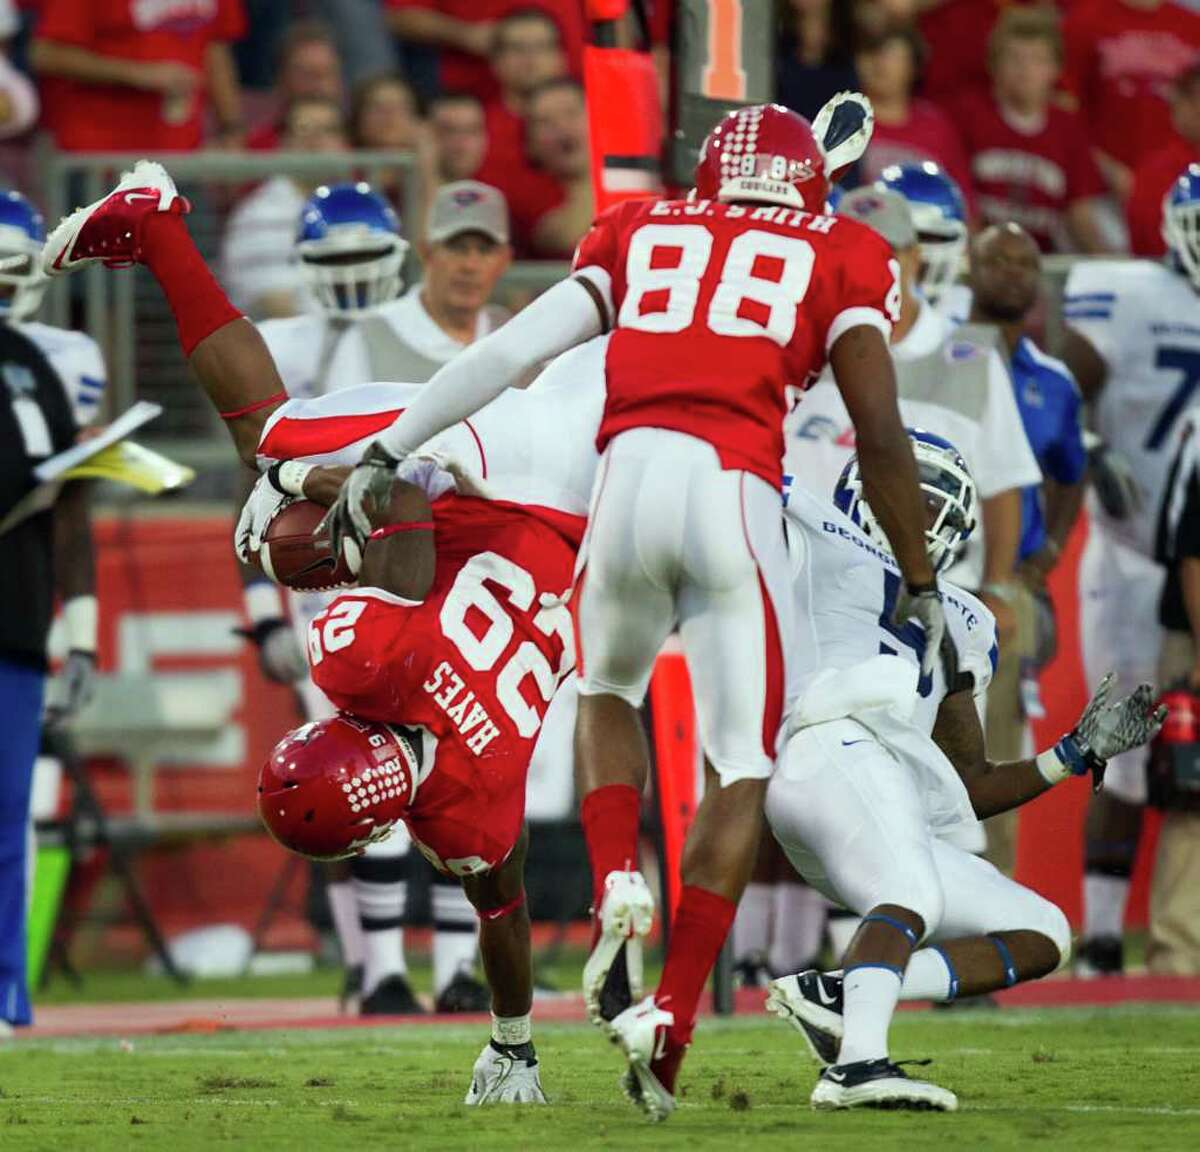 Houston Cougars running back Michael Hayes (29) flips over Georgia State Panthers cornerback Demarius Matthews (5) as wide receiver E.J. Smith (88) looks on during the first half of an NCAA football game at Robertson Stadium, Saturday, Sept. 24, 2011, in Houston.